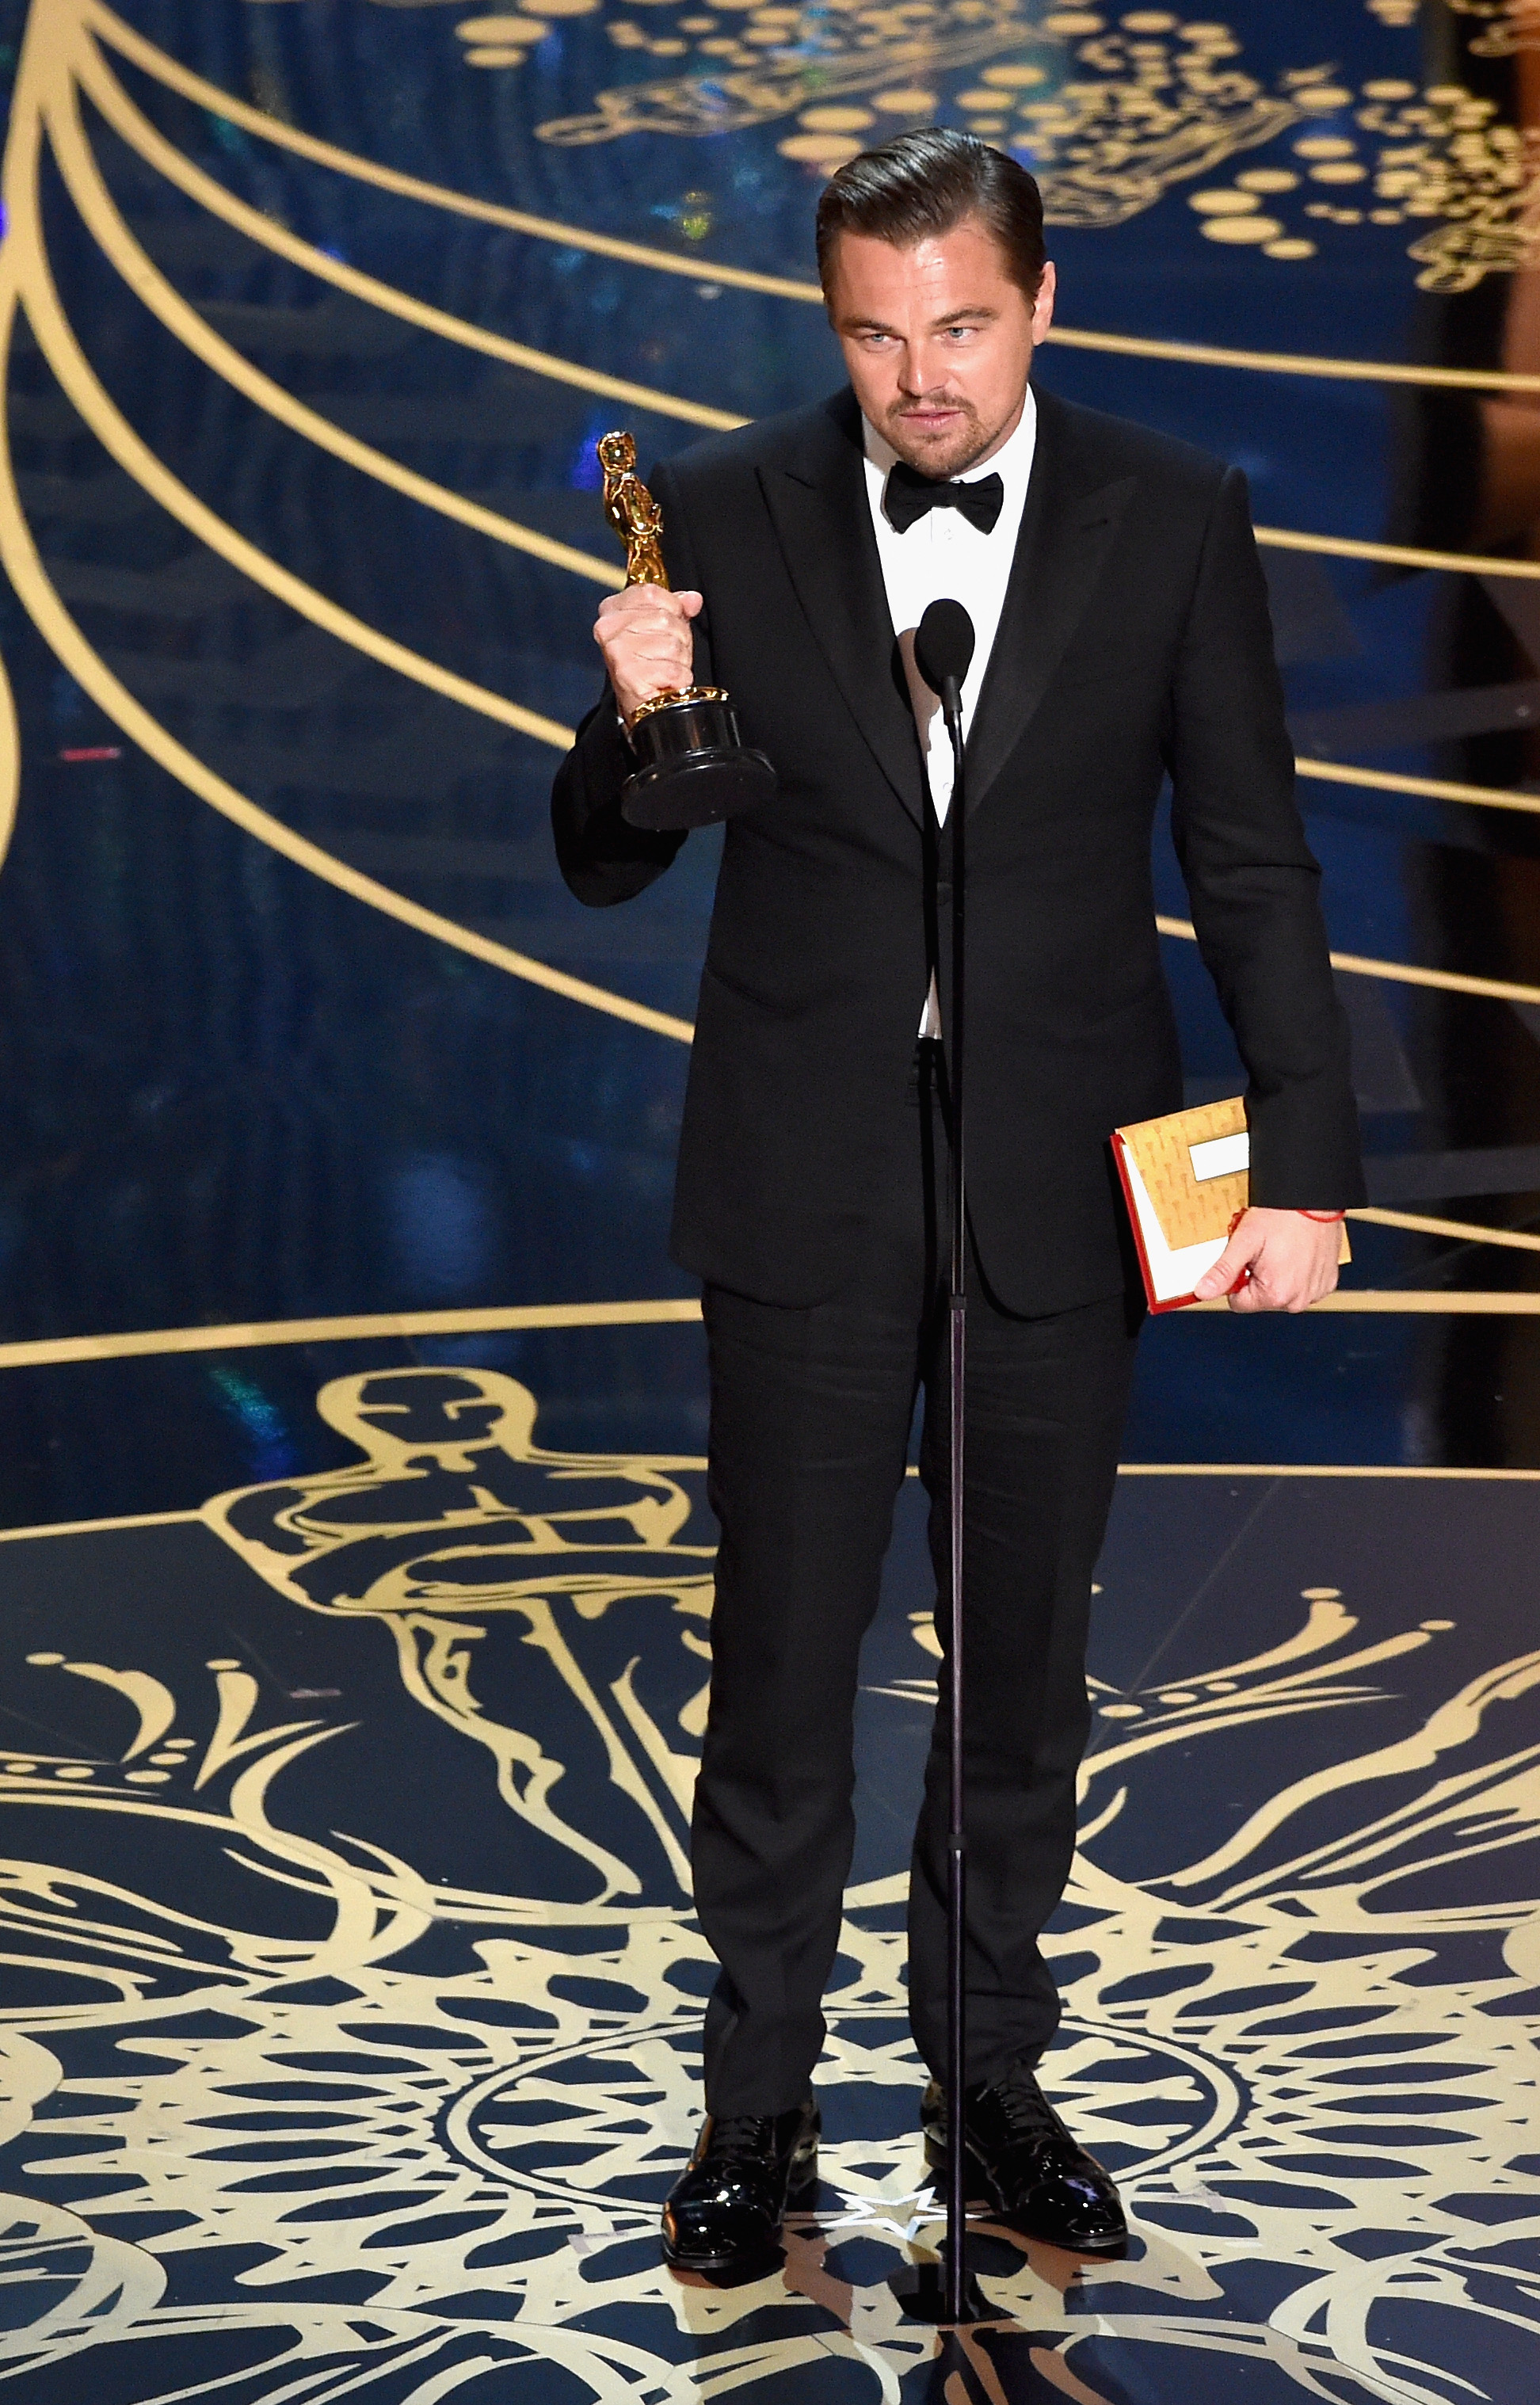 Leonardo Dicaprio accepts award for Best Actor in the movie The Revenant at the 88th Annual Academy Awards. (Photo courtesy of The Oscars)